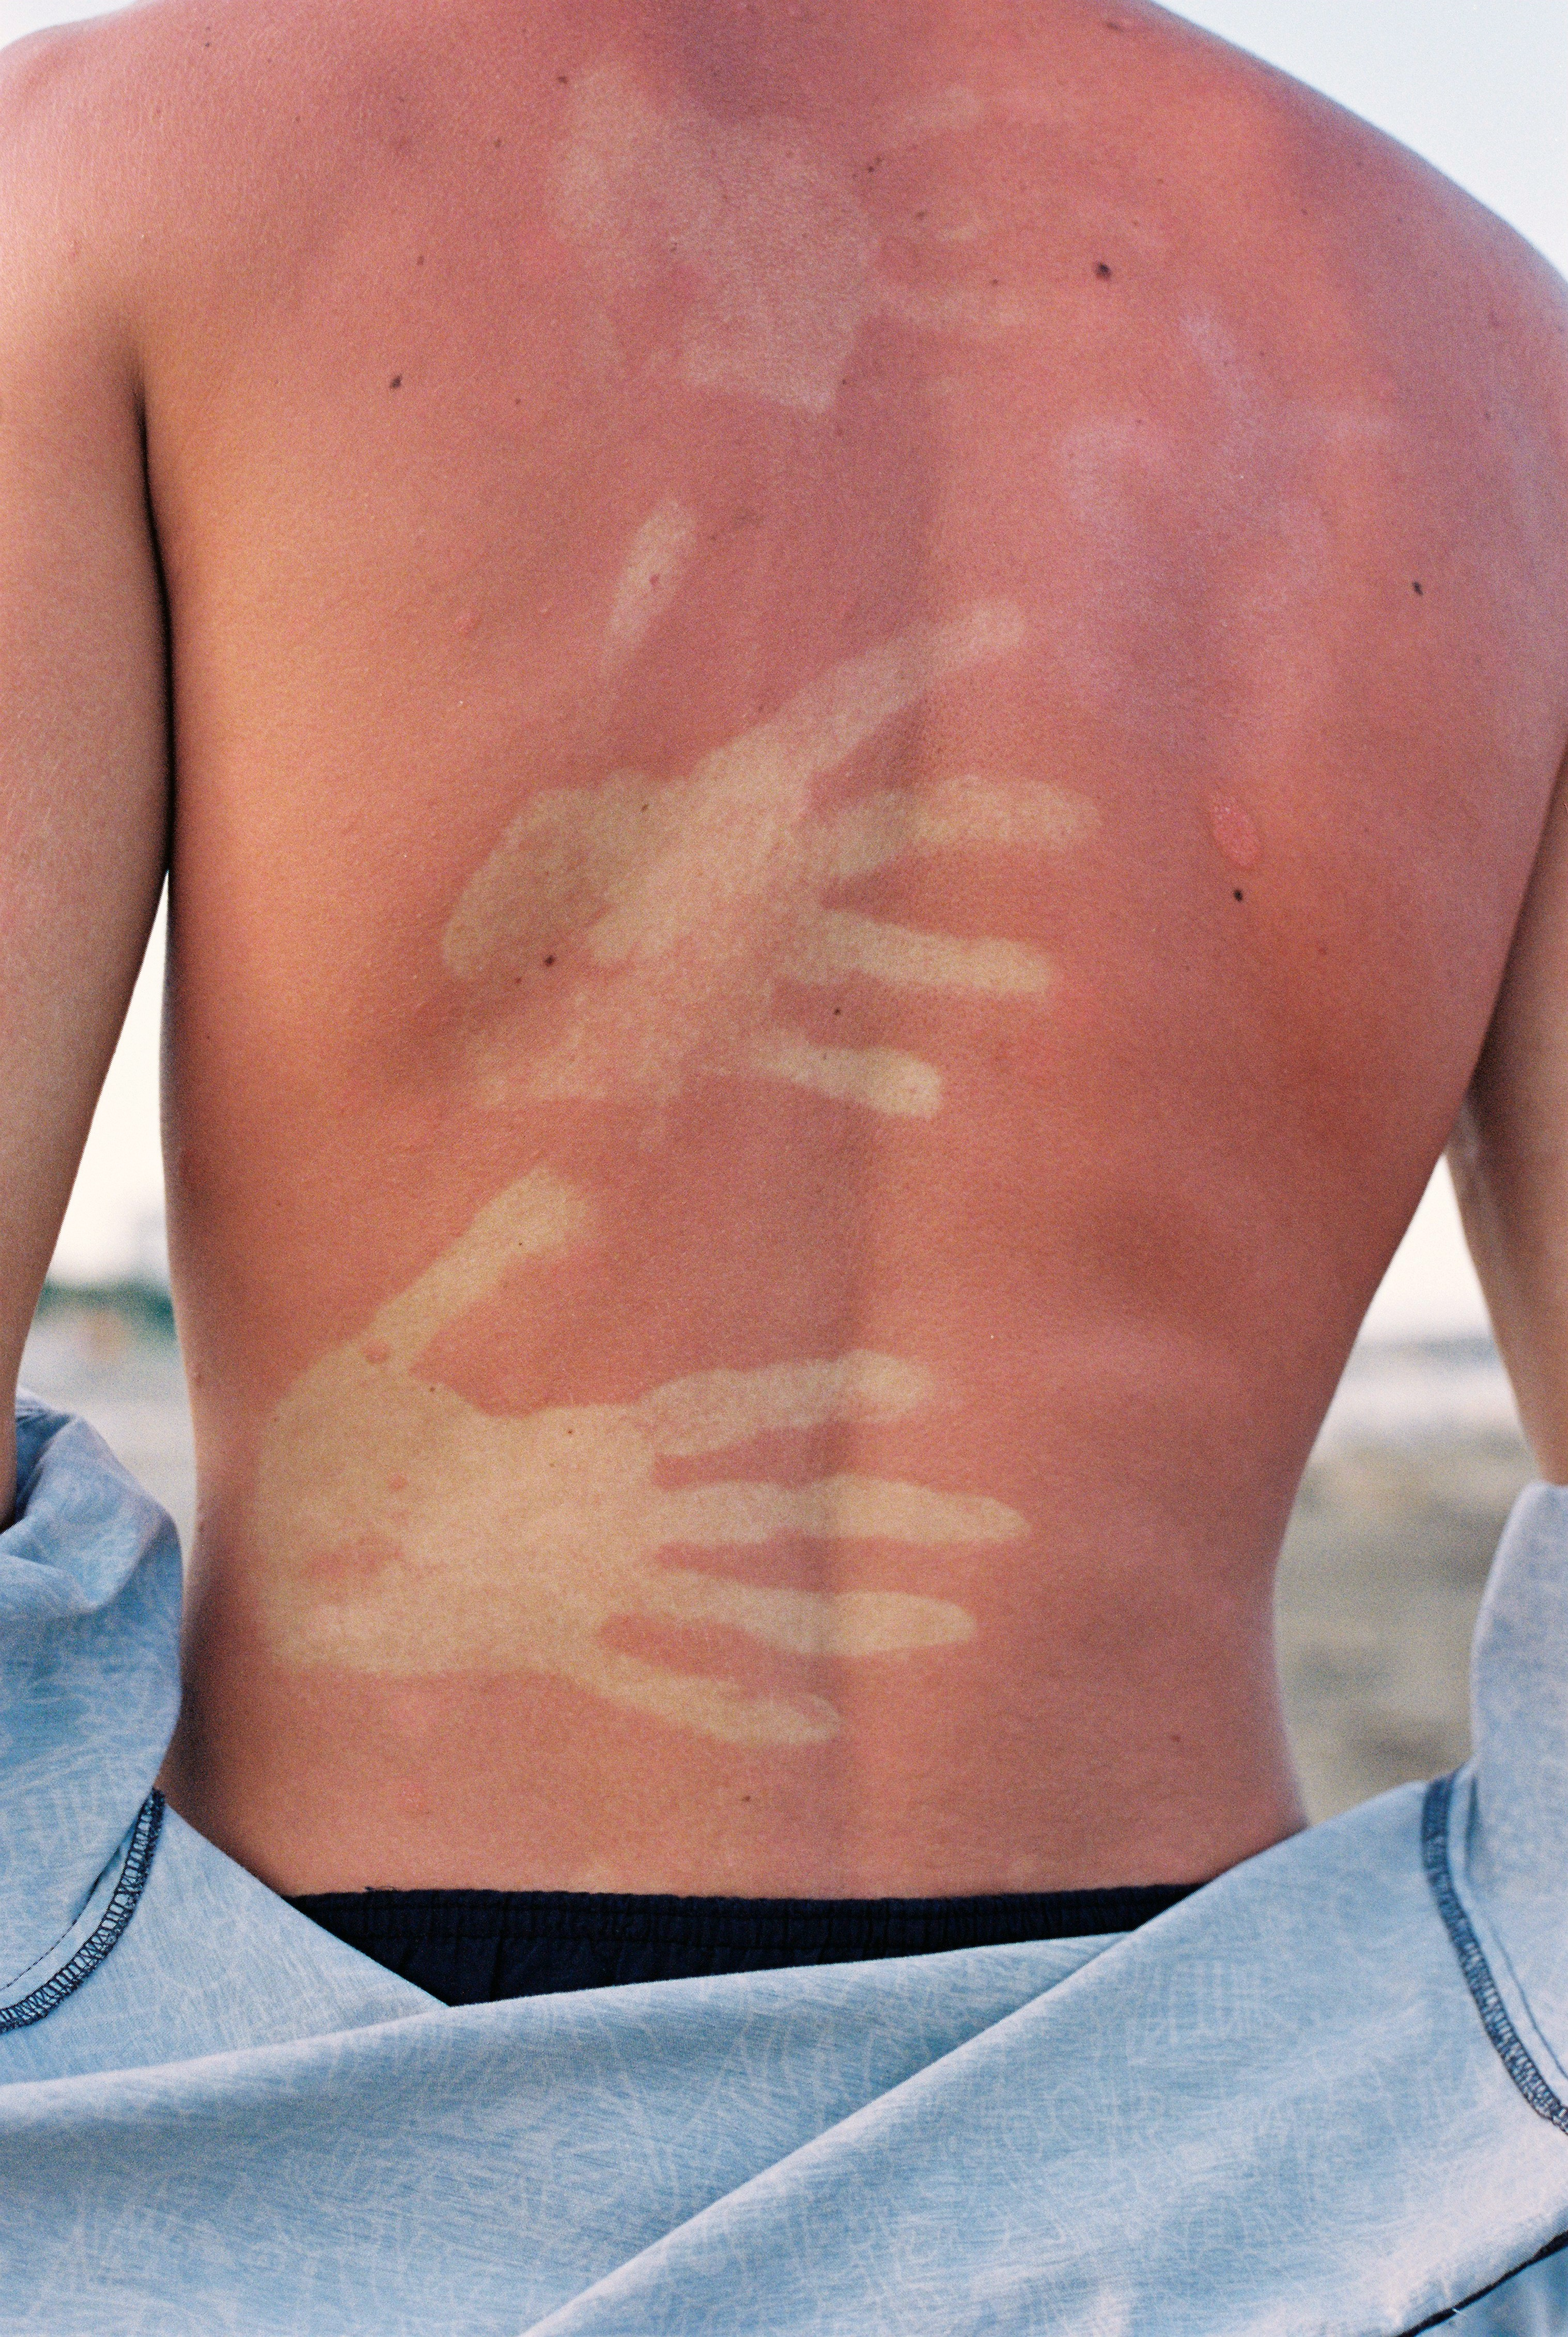 A man on the beach takes off his shirt revealing hand shaped sun burns on his back.